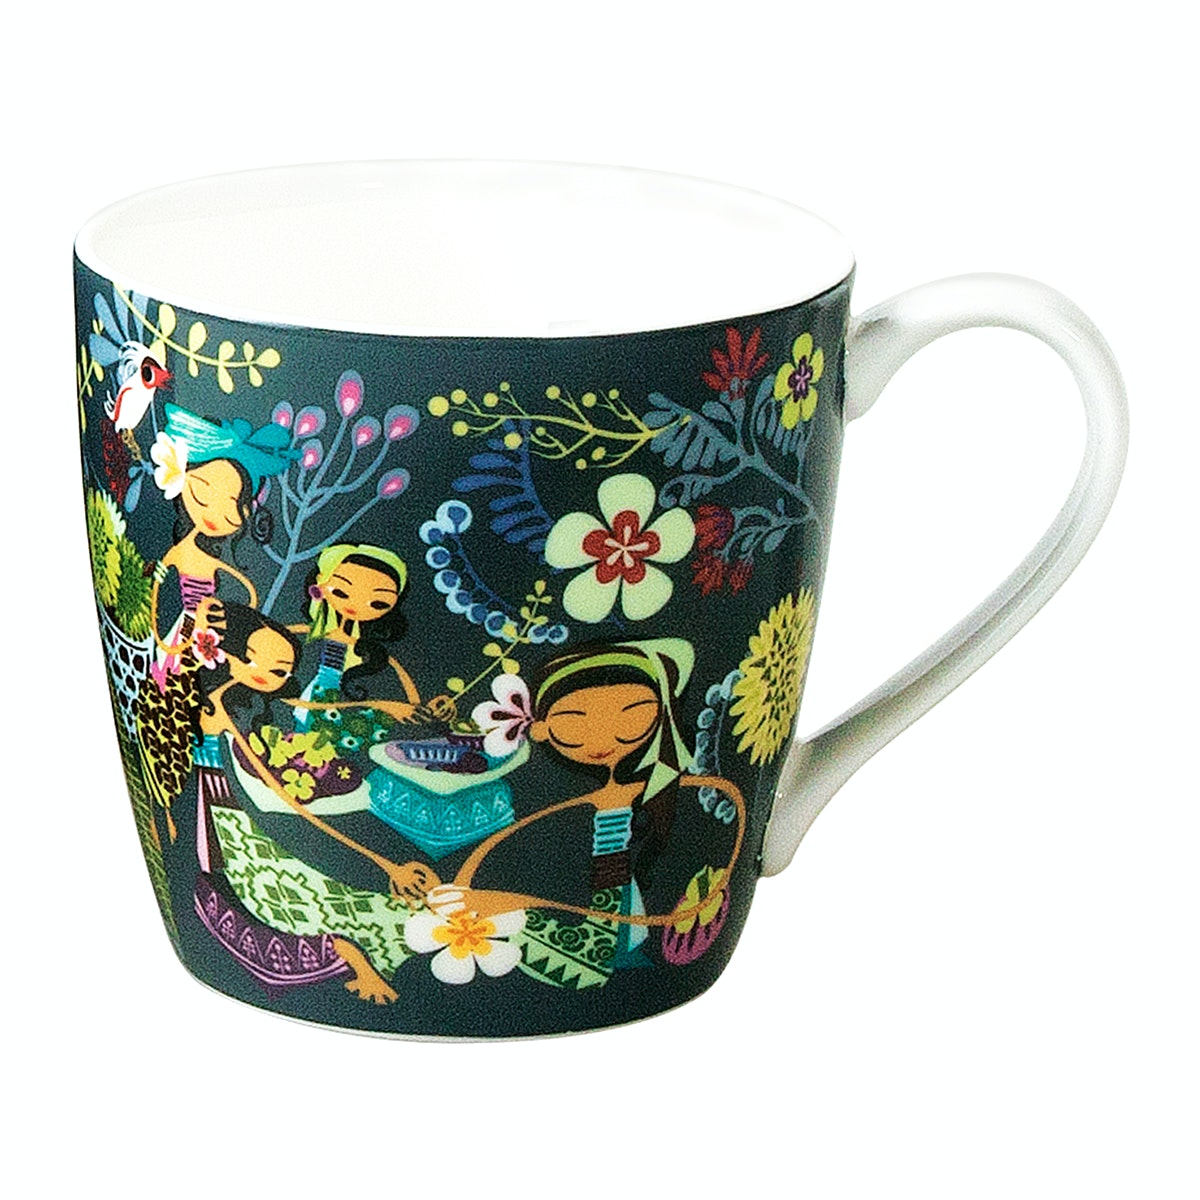 Saint James Premium Tableware Bali Fruit Mug AT